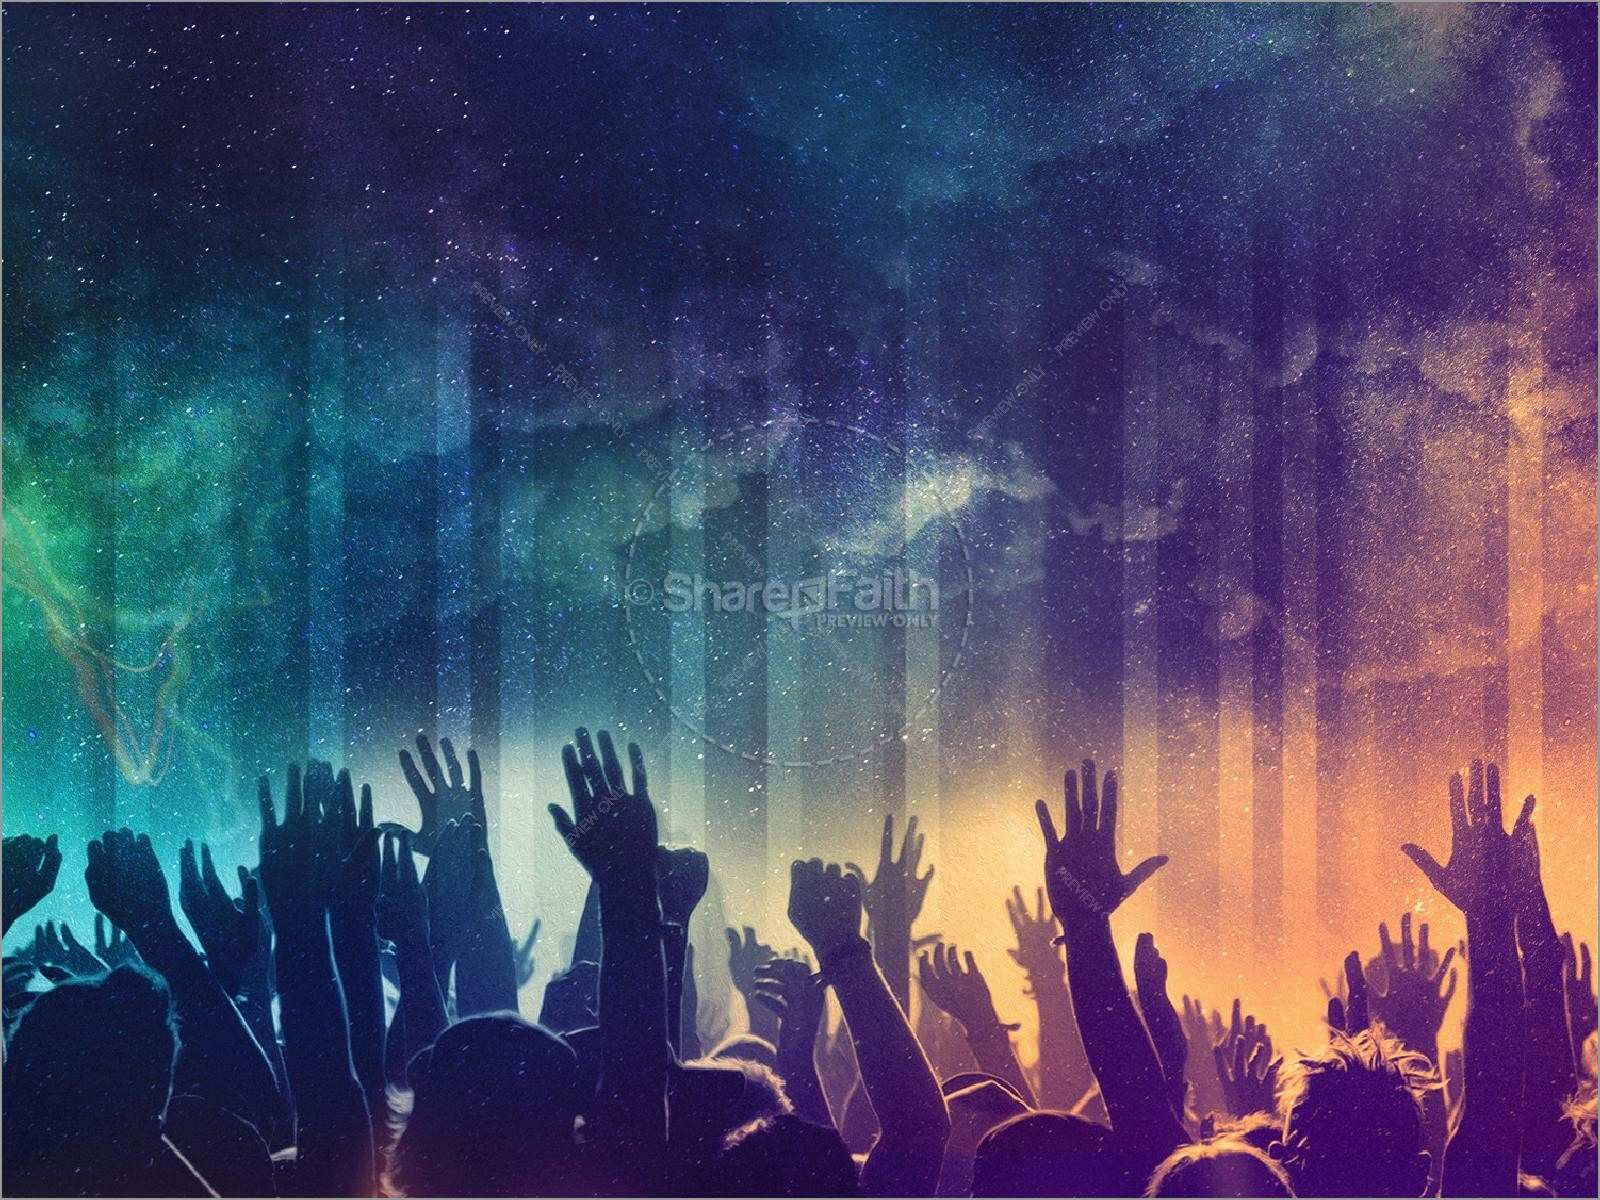 Praise And Worship Powerpoint Templates Free Admirably Be Lifted Regarding Praise And Worship Powerpoint Templates